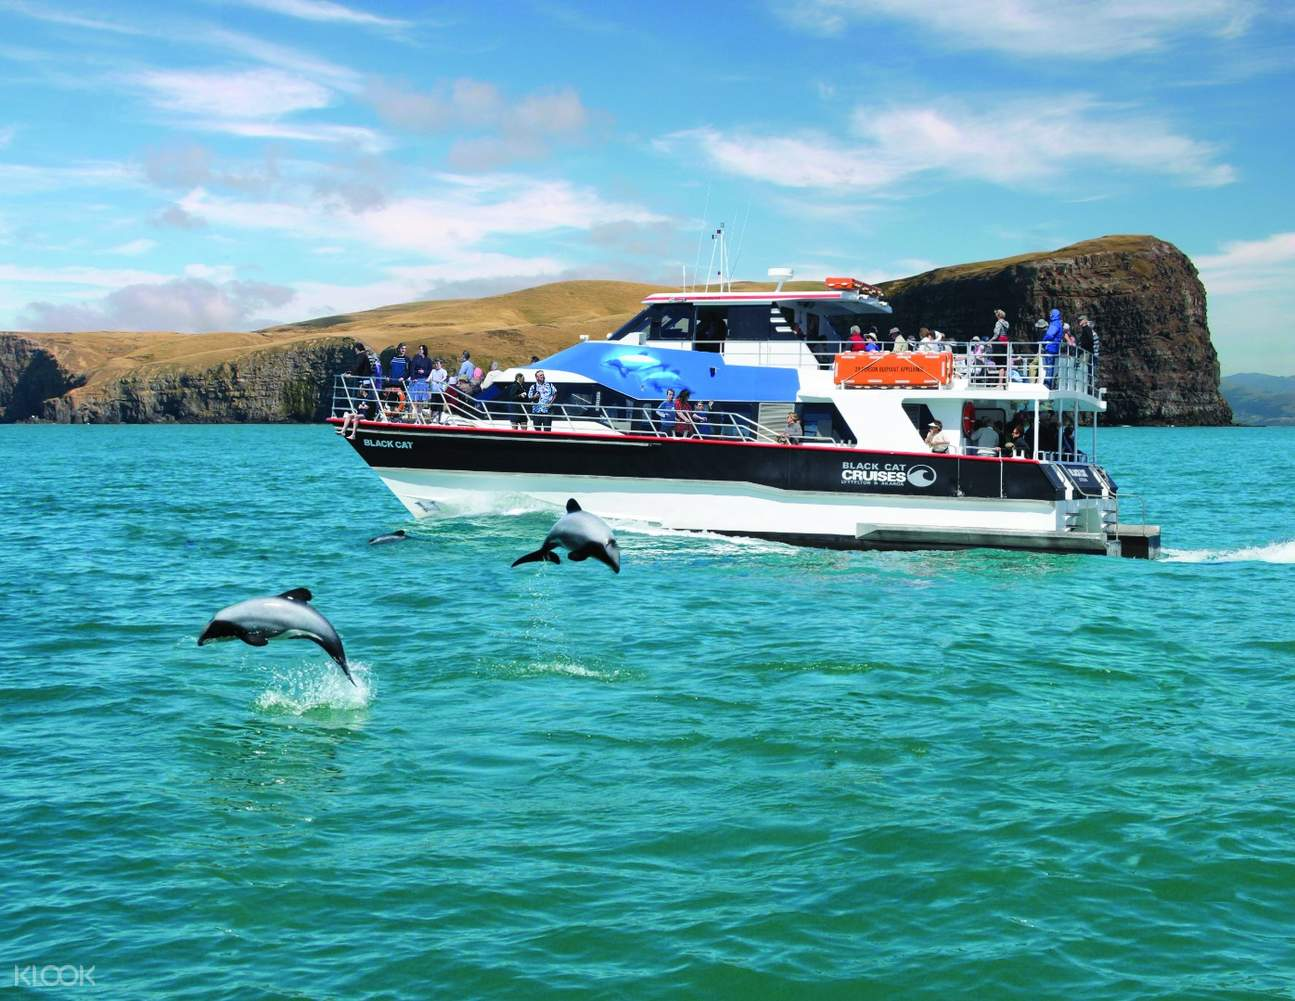 If you'd prefer, watch the dolphins play in the water from the warmth and comfort of the boat